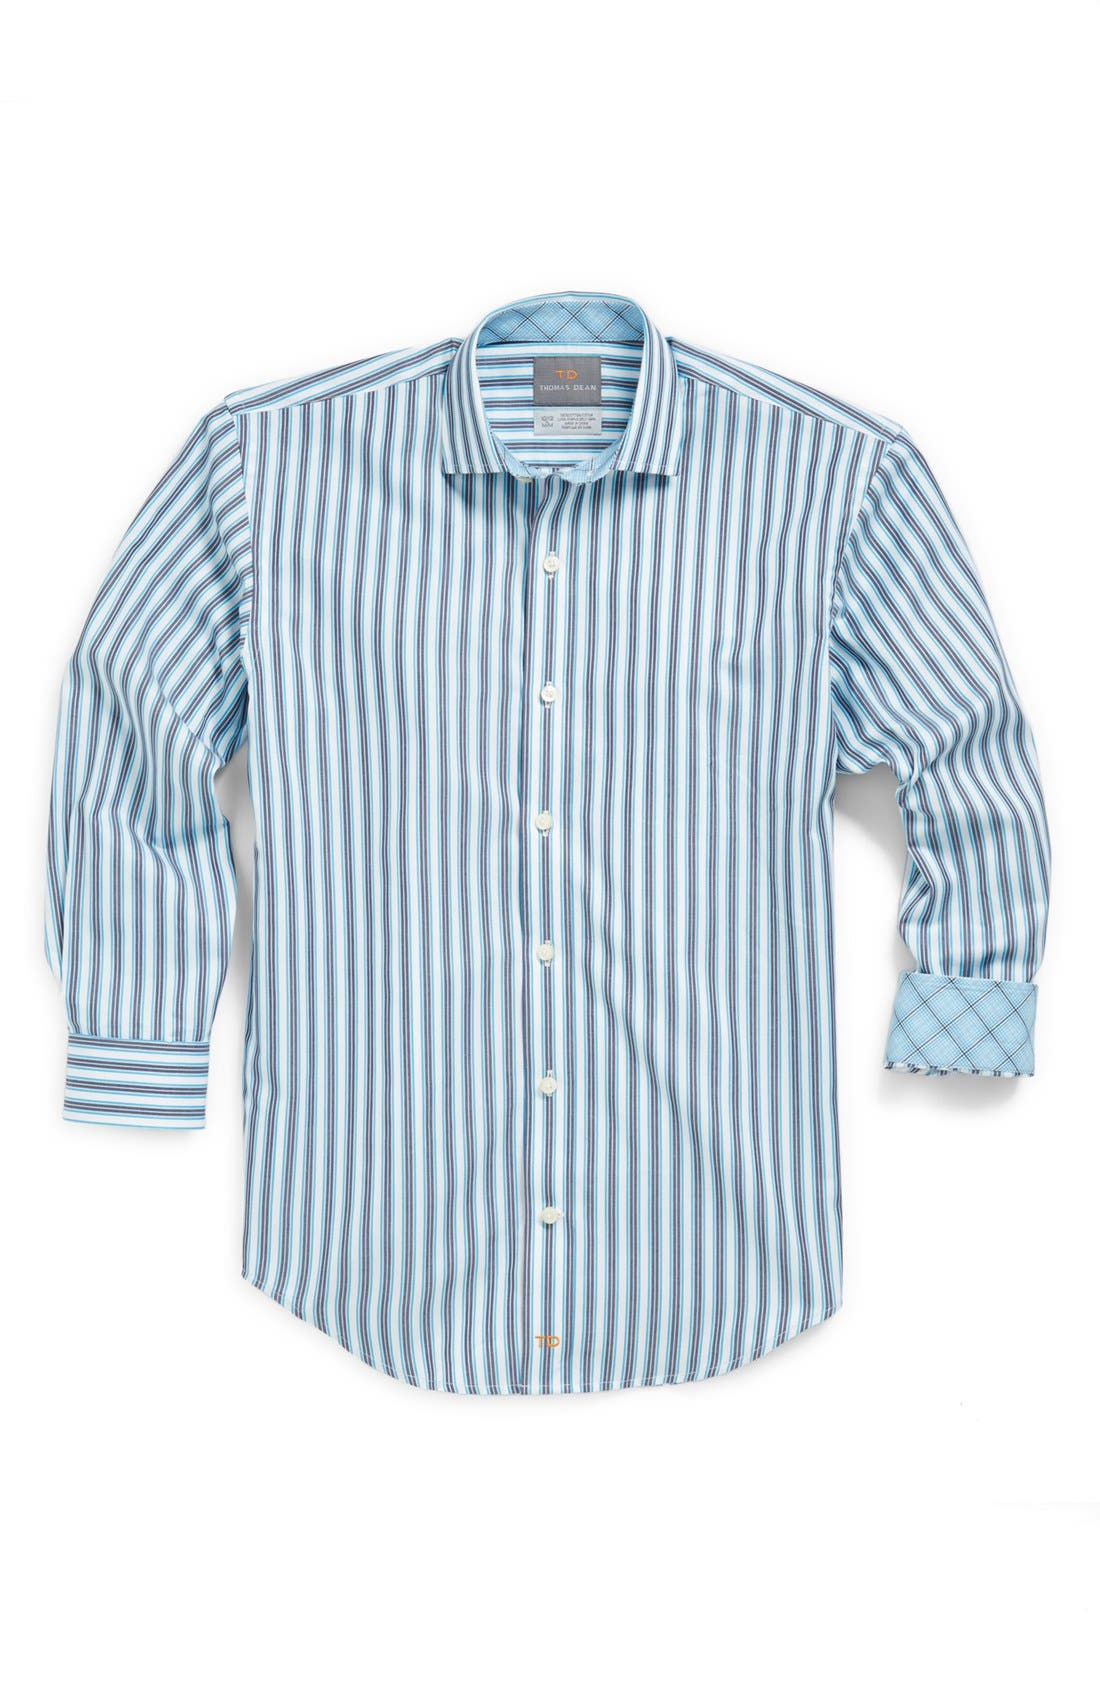 Alternate Image 1 Selected - Thomas Dean Dress Shirt (Little Boys)